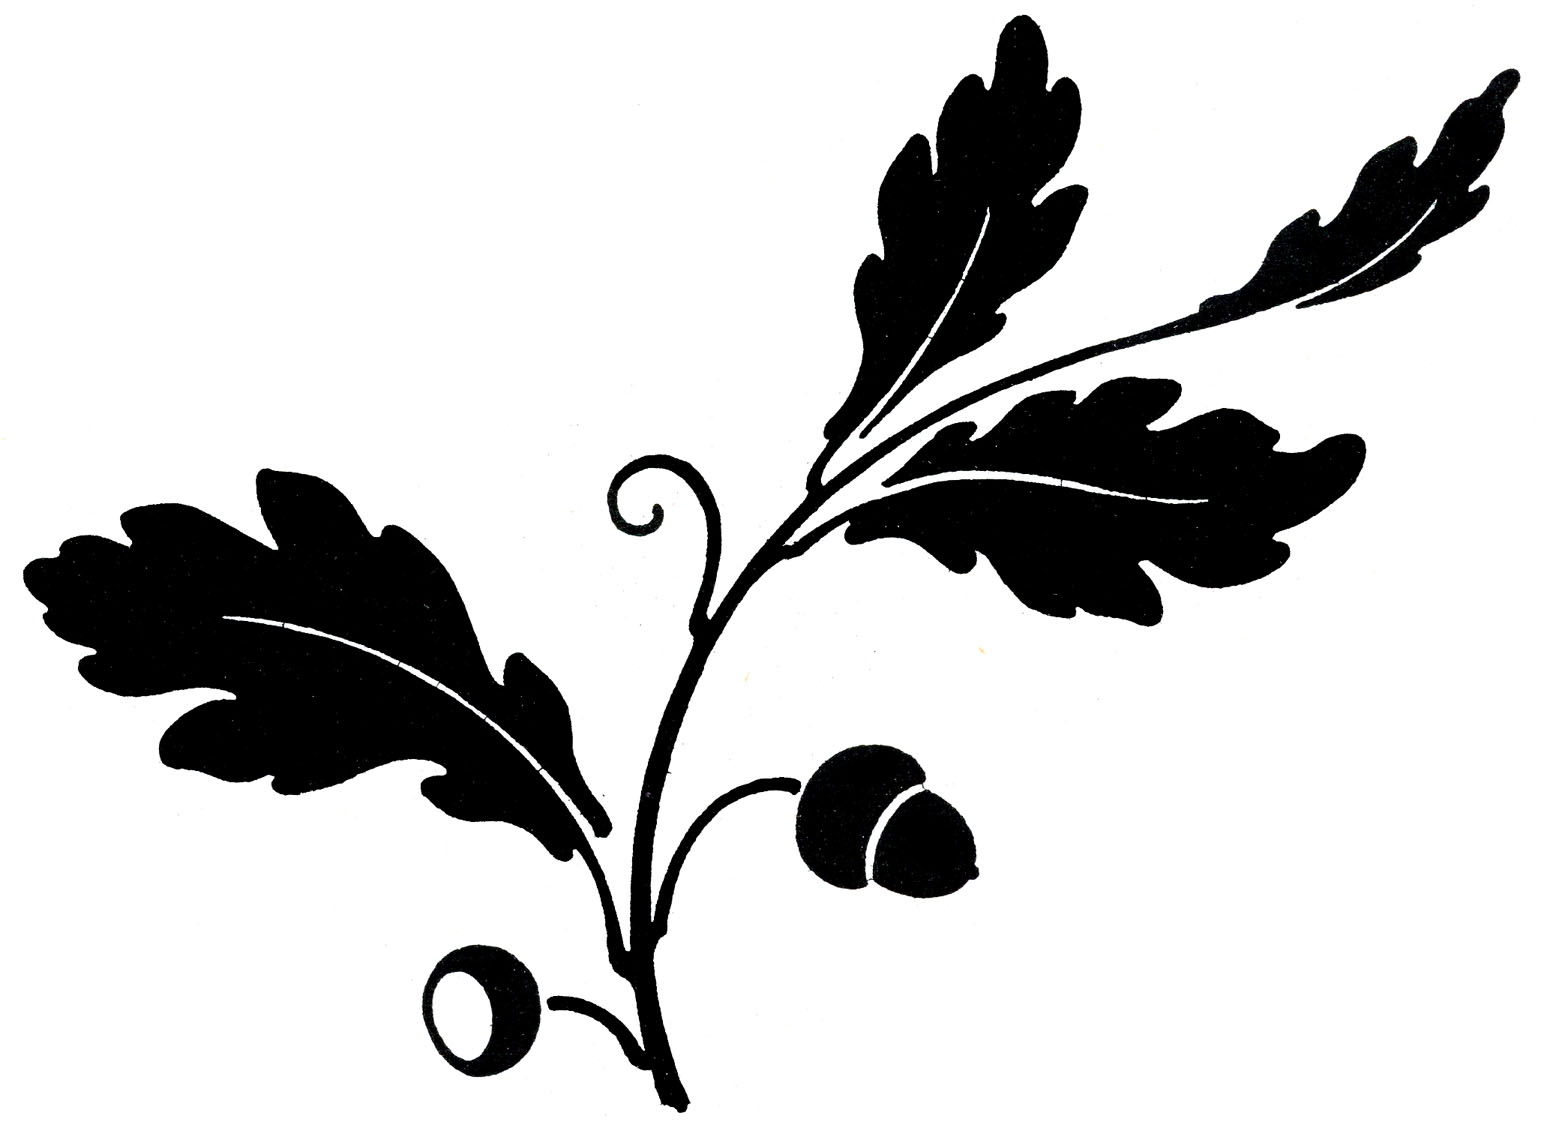 Free Leaf Silhouette Cliparts, Download Free Clip Art, Free.